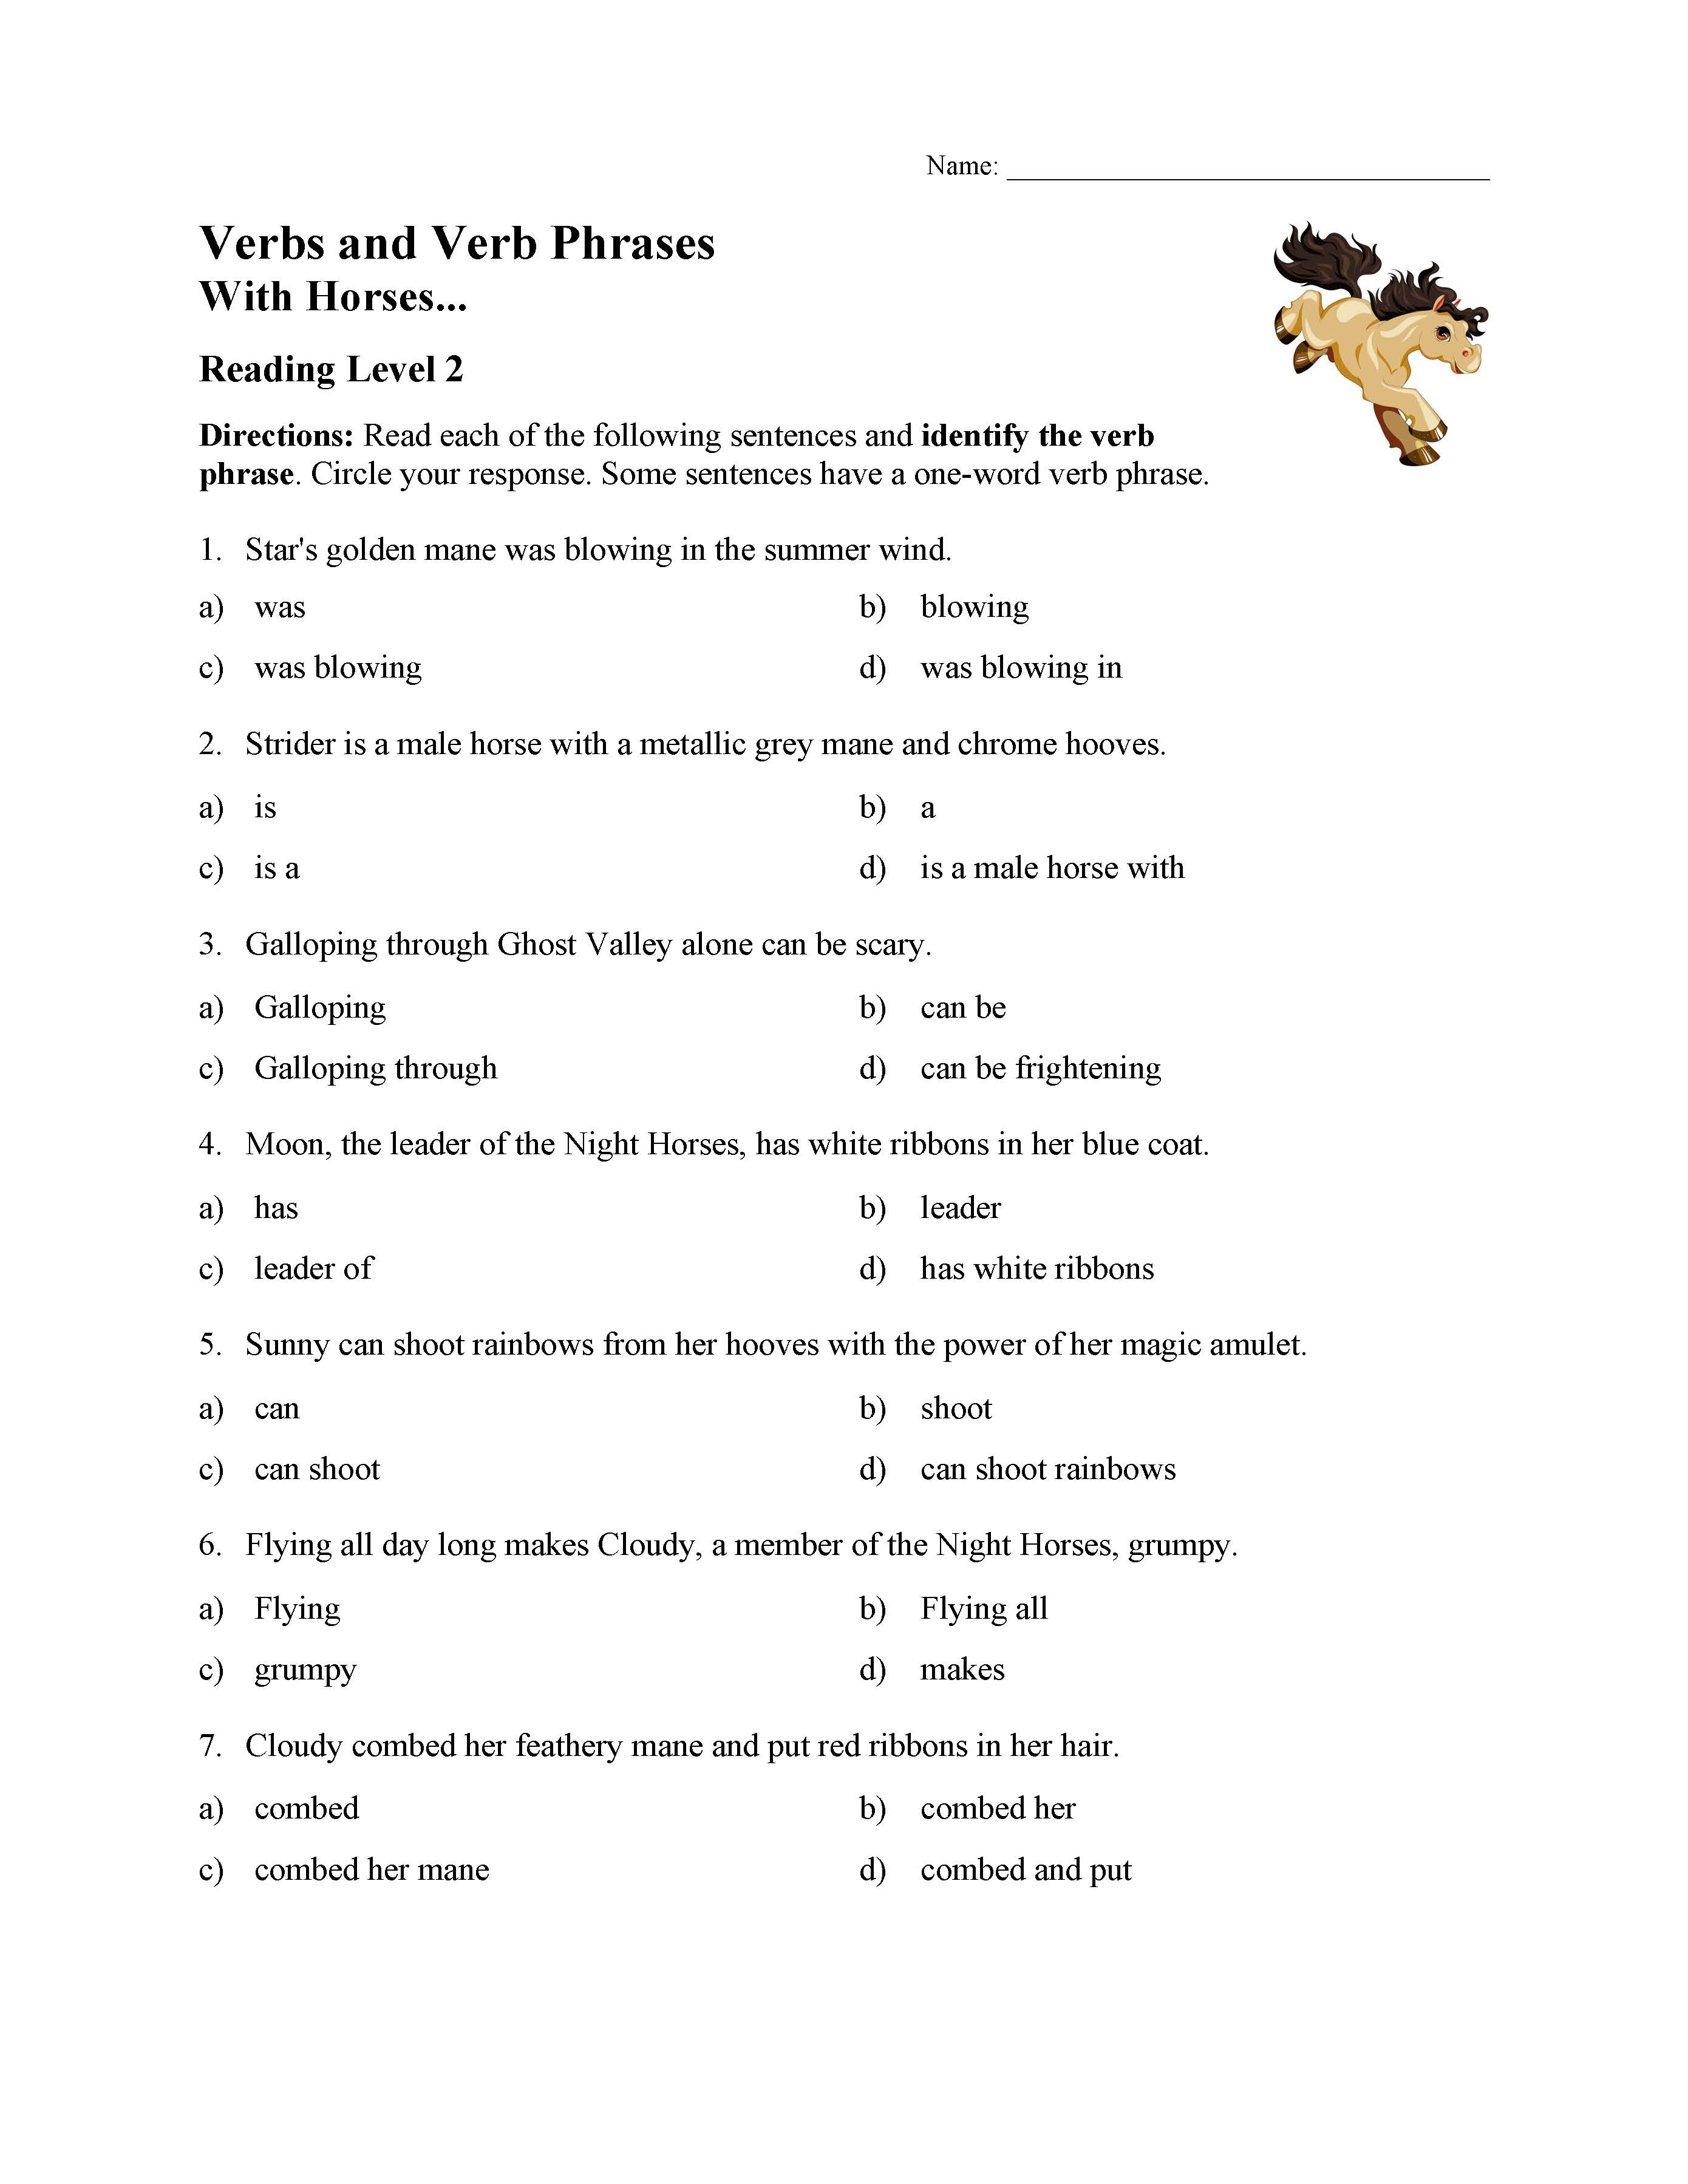 Verb Phrases Test With Horses Reading Level 2 Preview